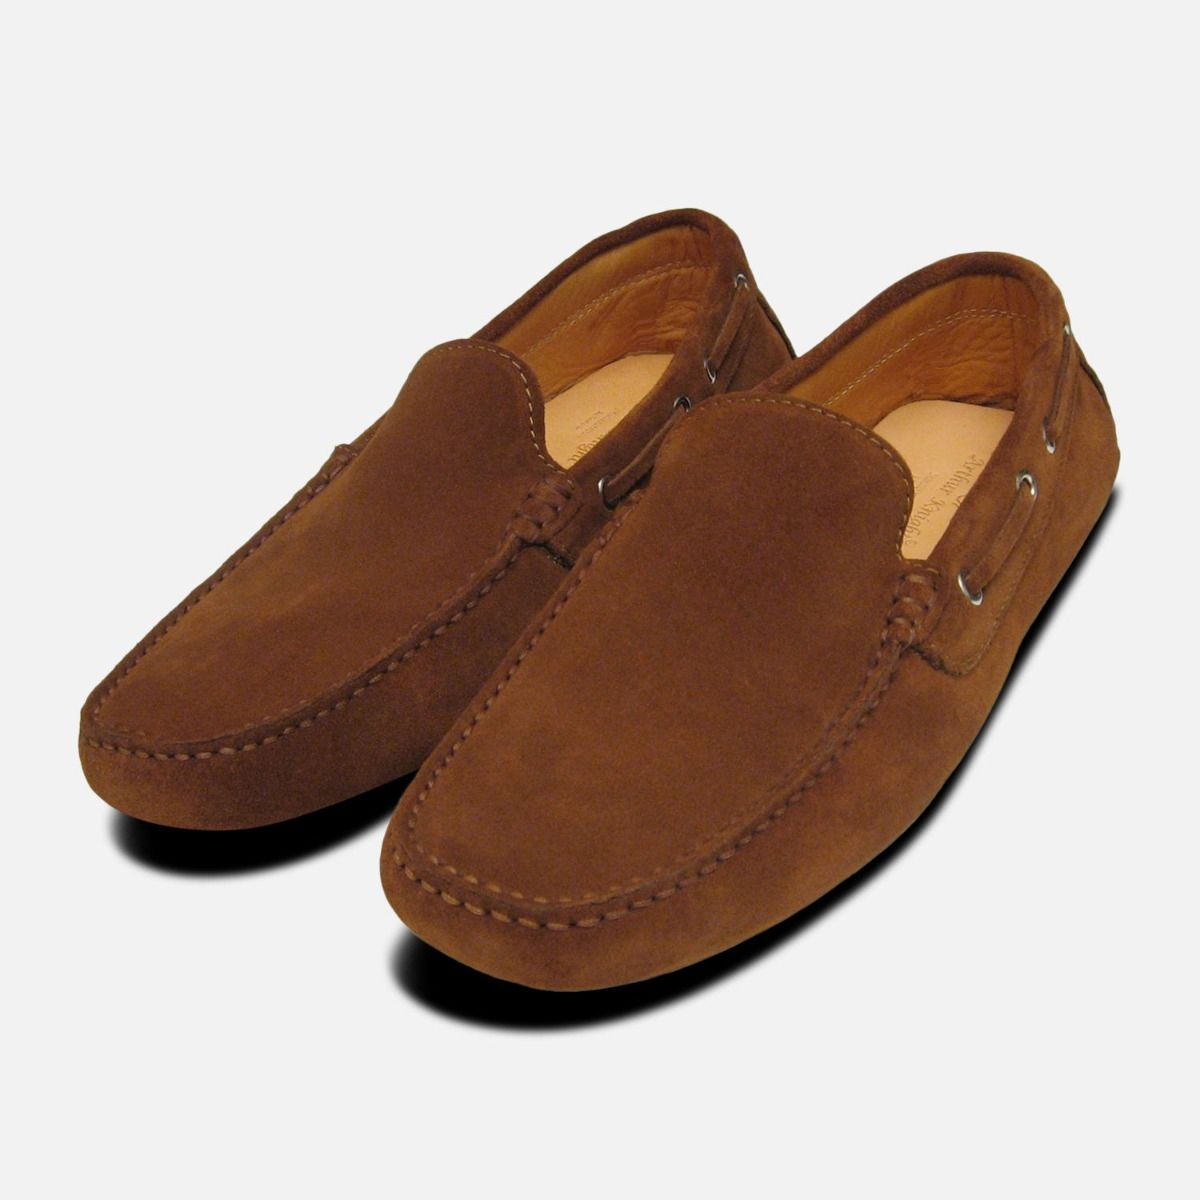 719fedf58190 Mens Driving Shoes Tobacco Suede Moccasins